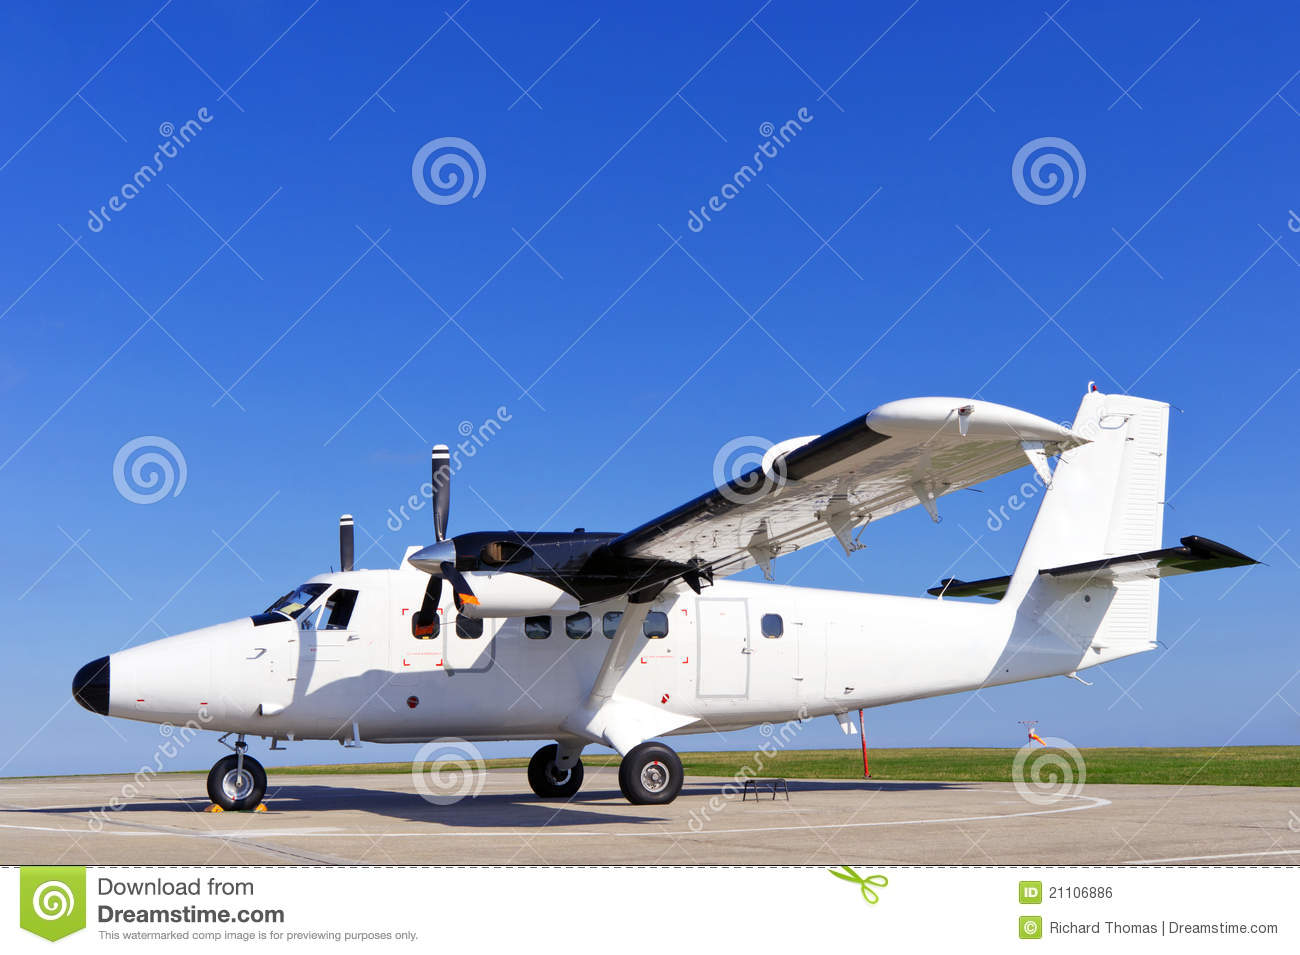 Twin Propeller Airplane On A Runway Royalty Free Stock Image  Image 21106886